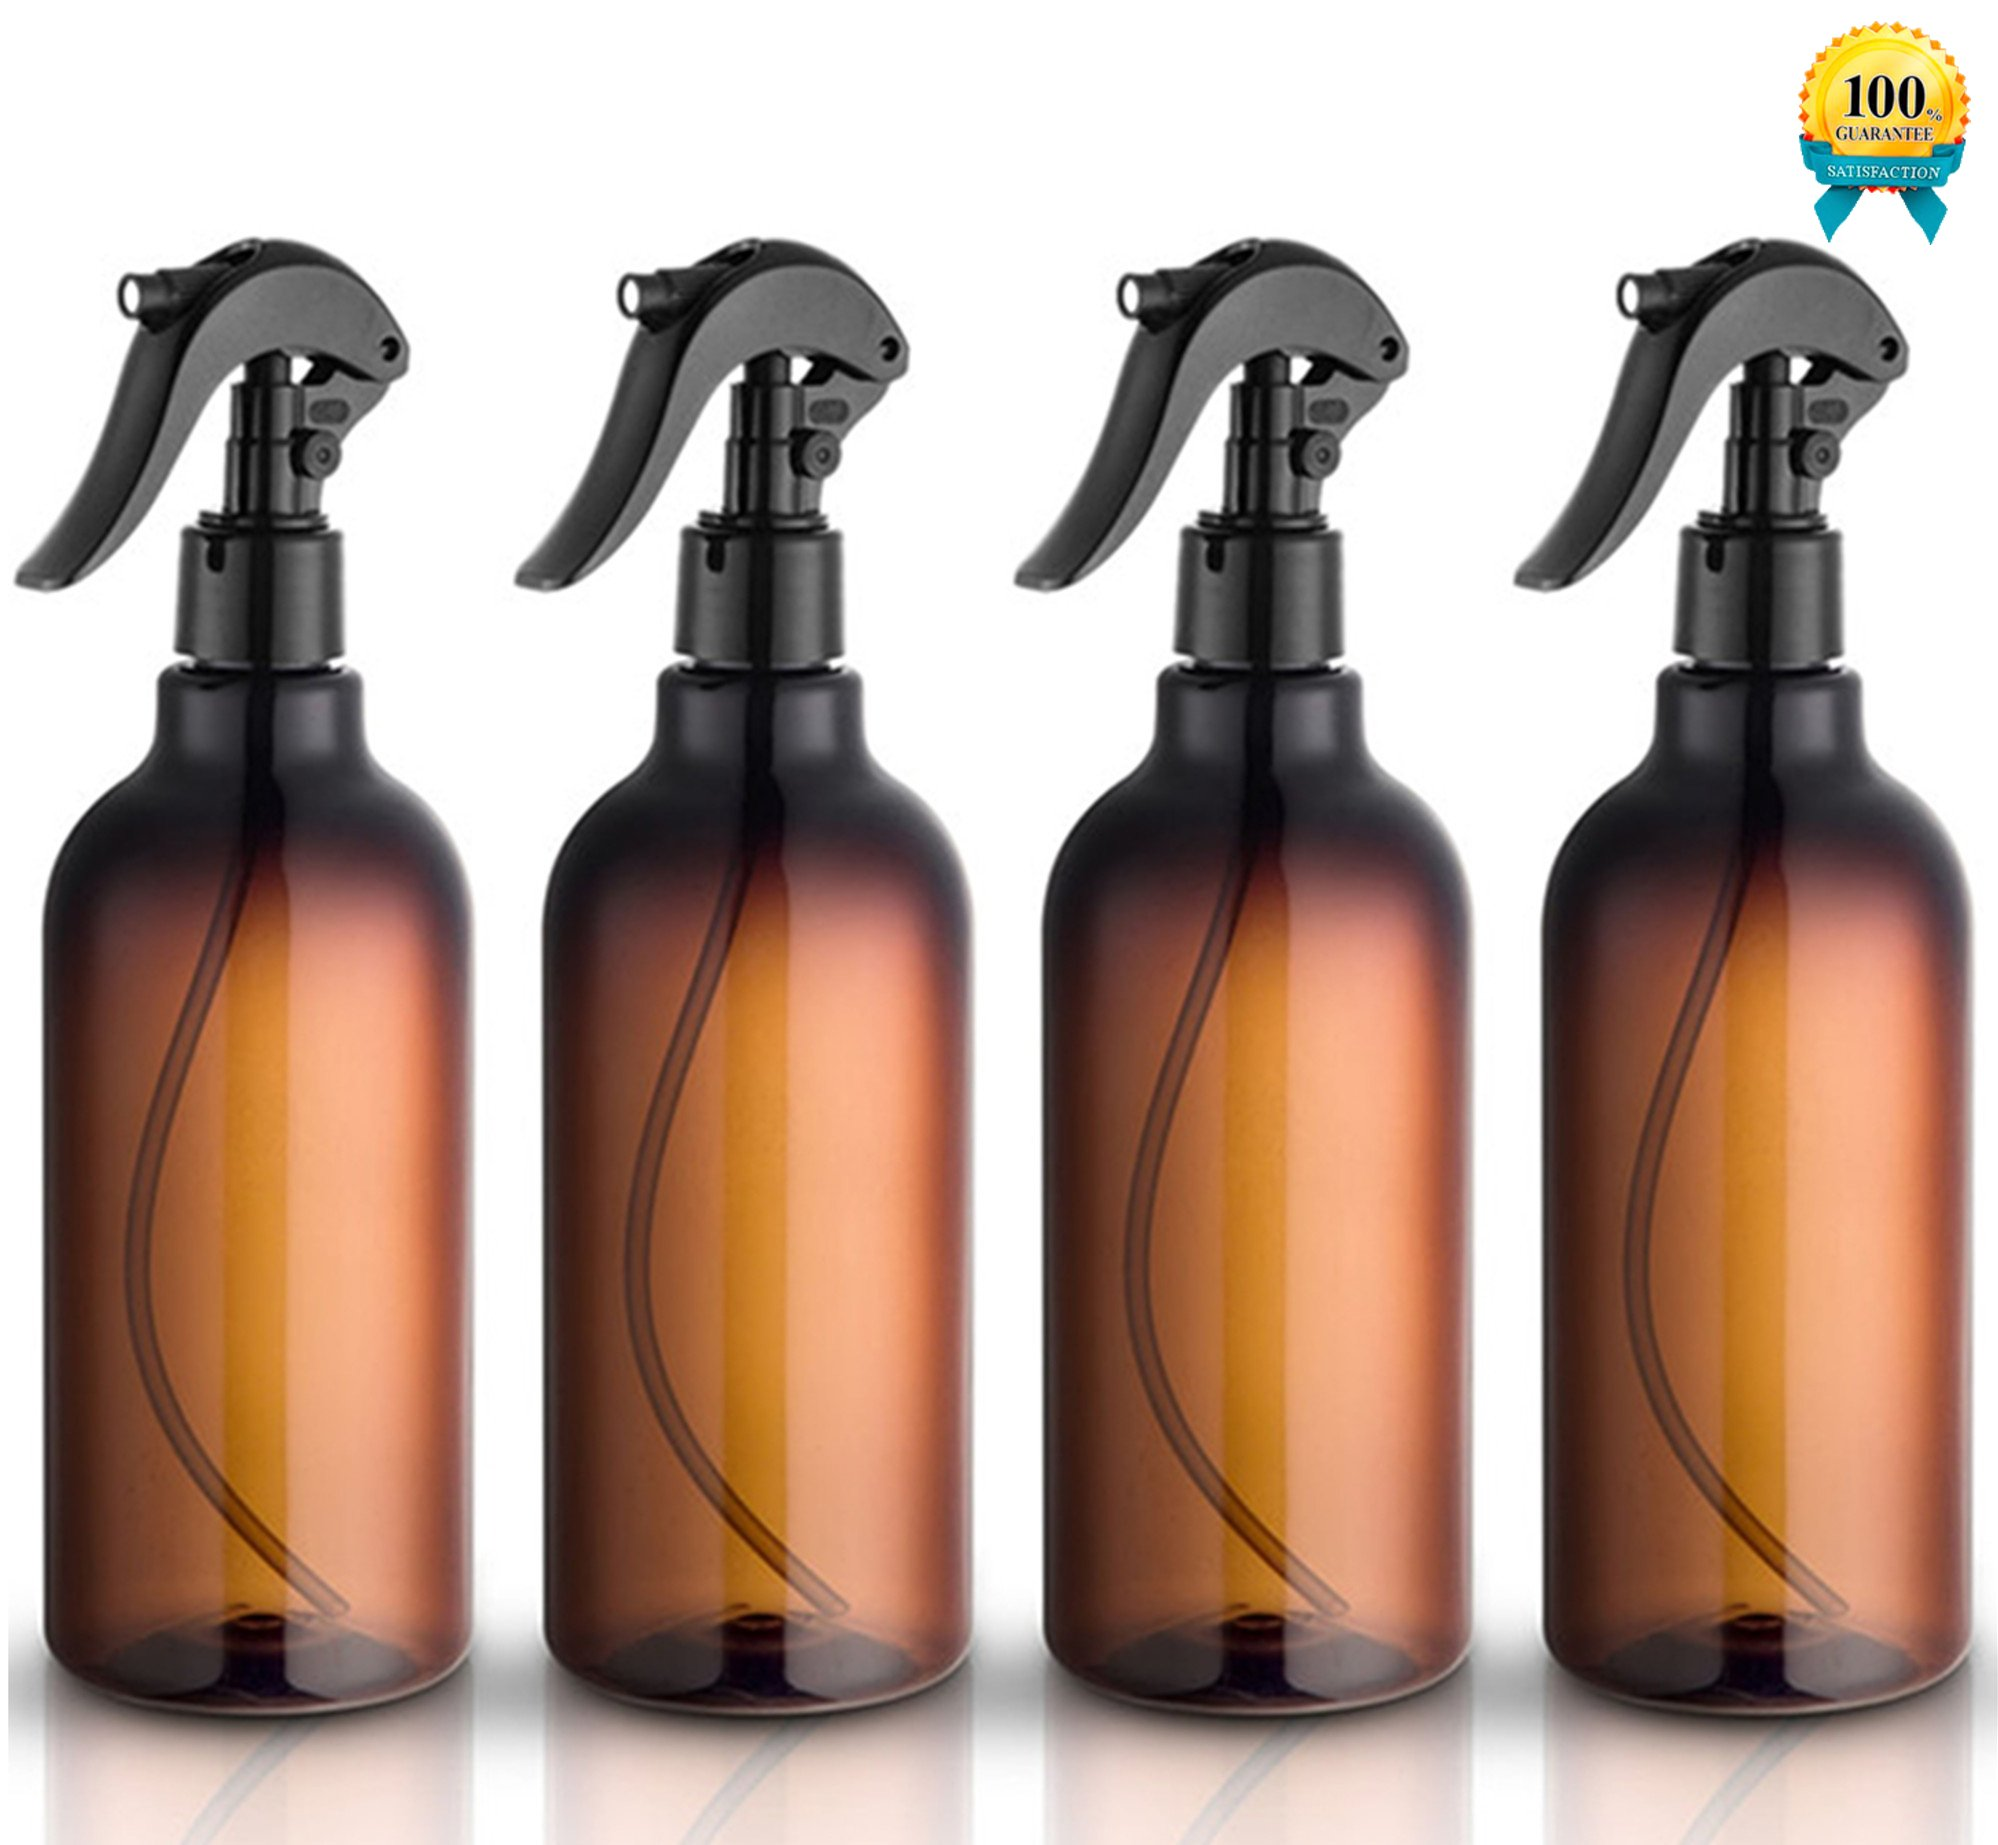 Spray Bottles, 16oz Plastic Spray Bottles with Black Fine Mist Sprayers Refillable Container for Essential Oils, Cleaning, Kitchen, Garden, Hair by Household Sprayer(4 pack) by household sprayer